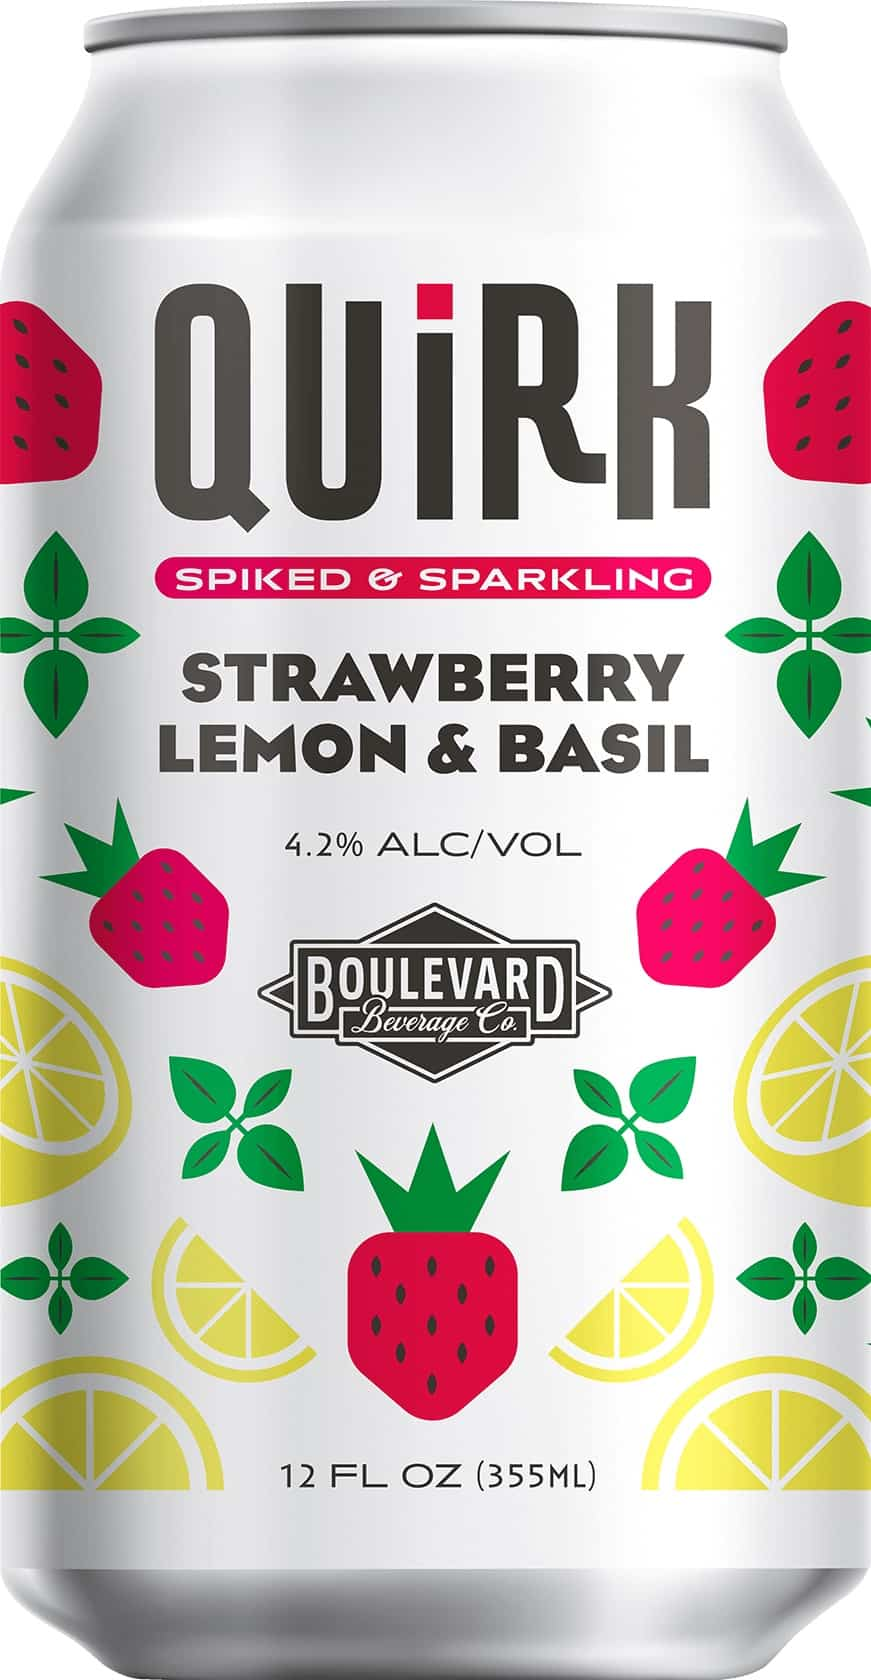 Boulevard Brewing Company, Missouri – Quirk Spiked & Sparkling